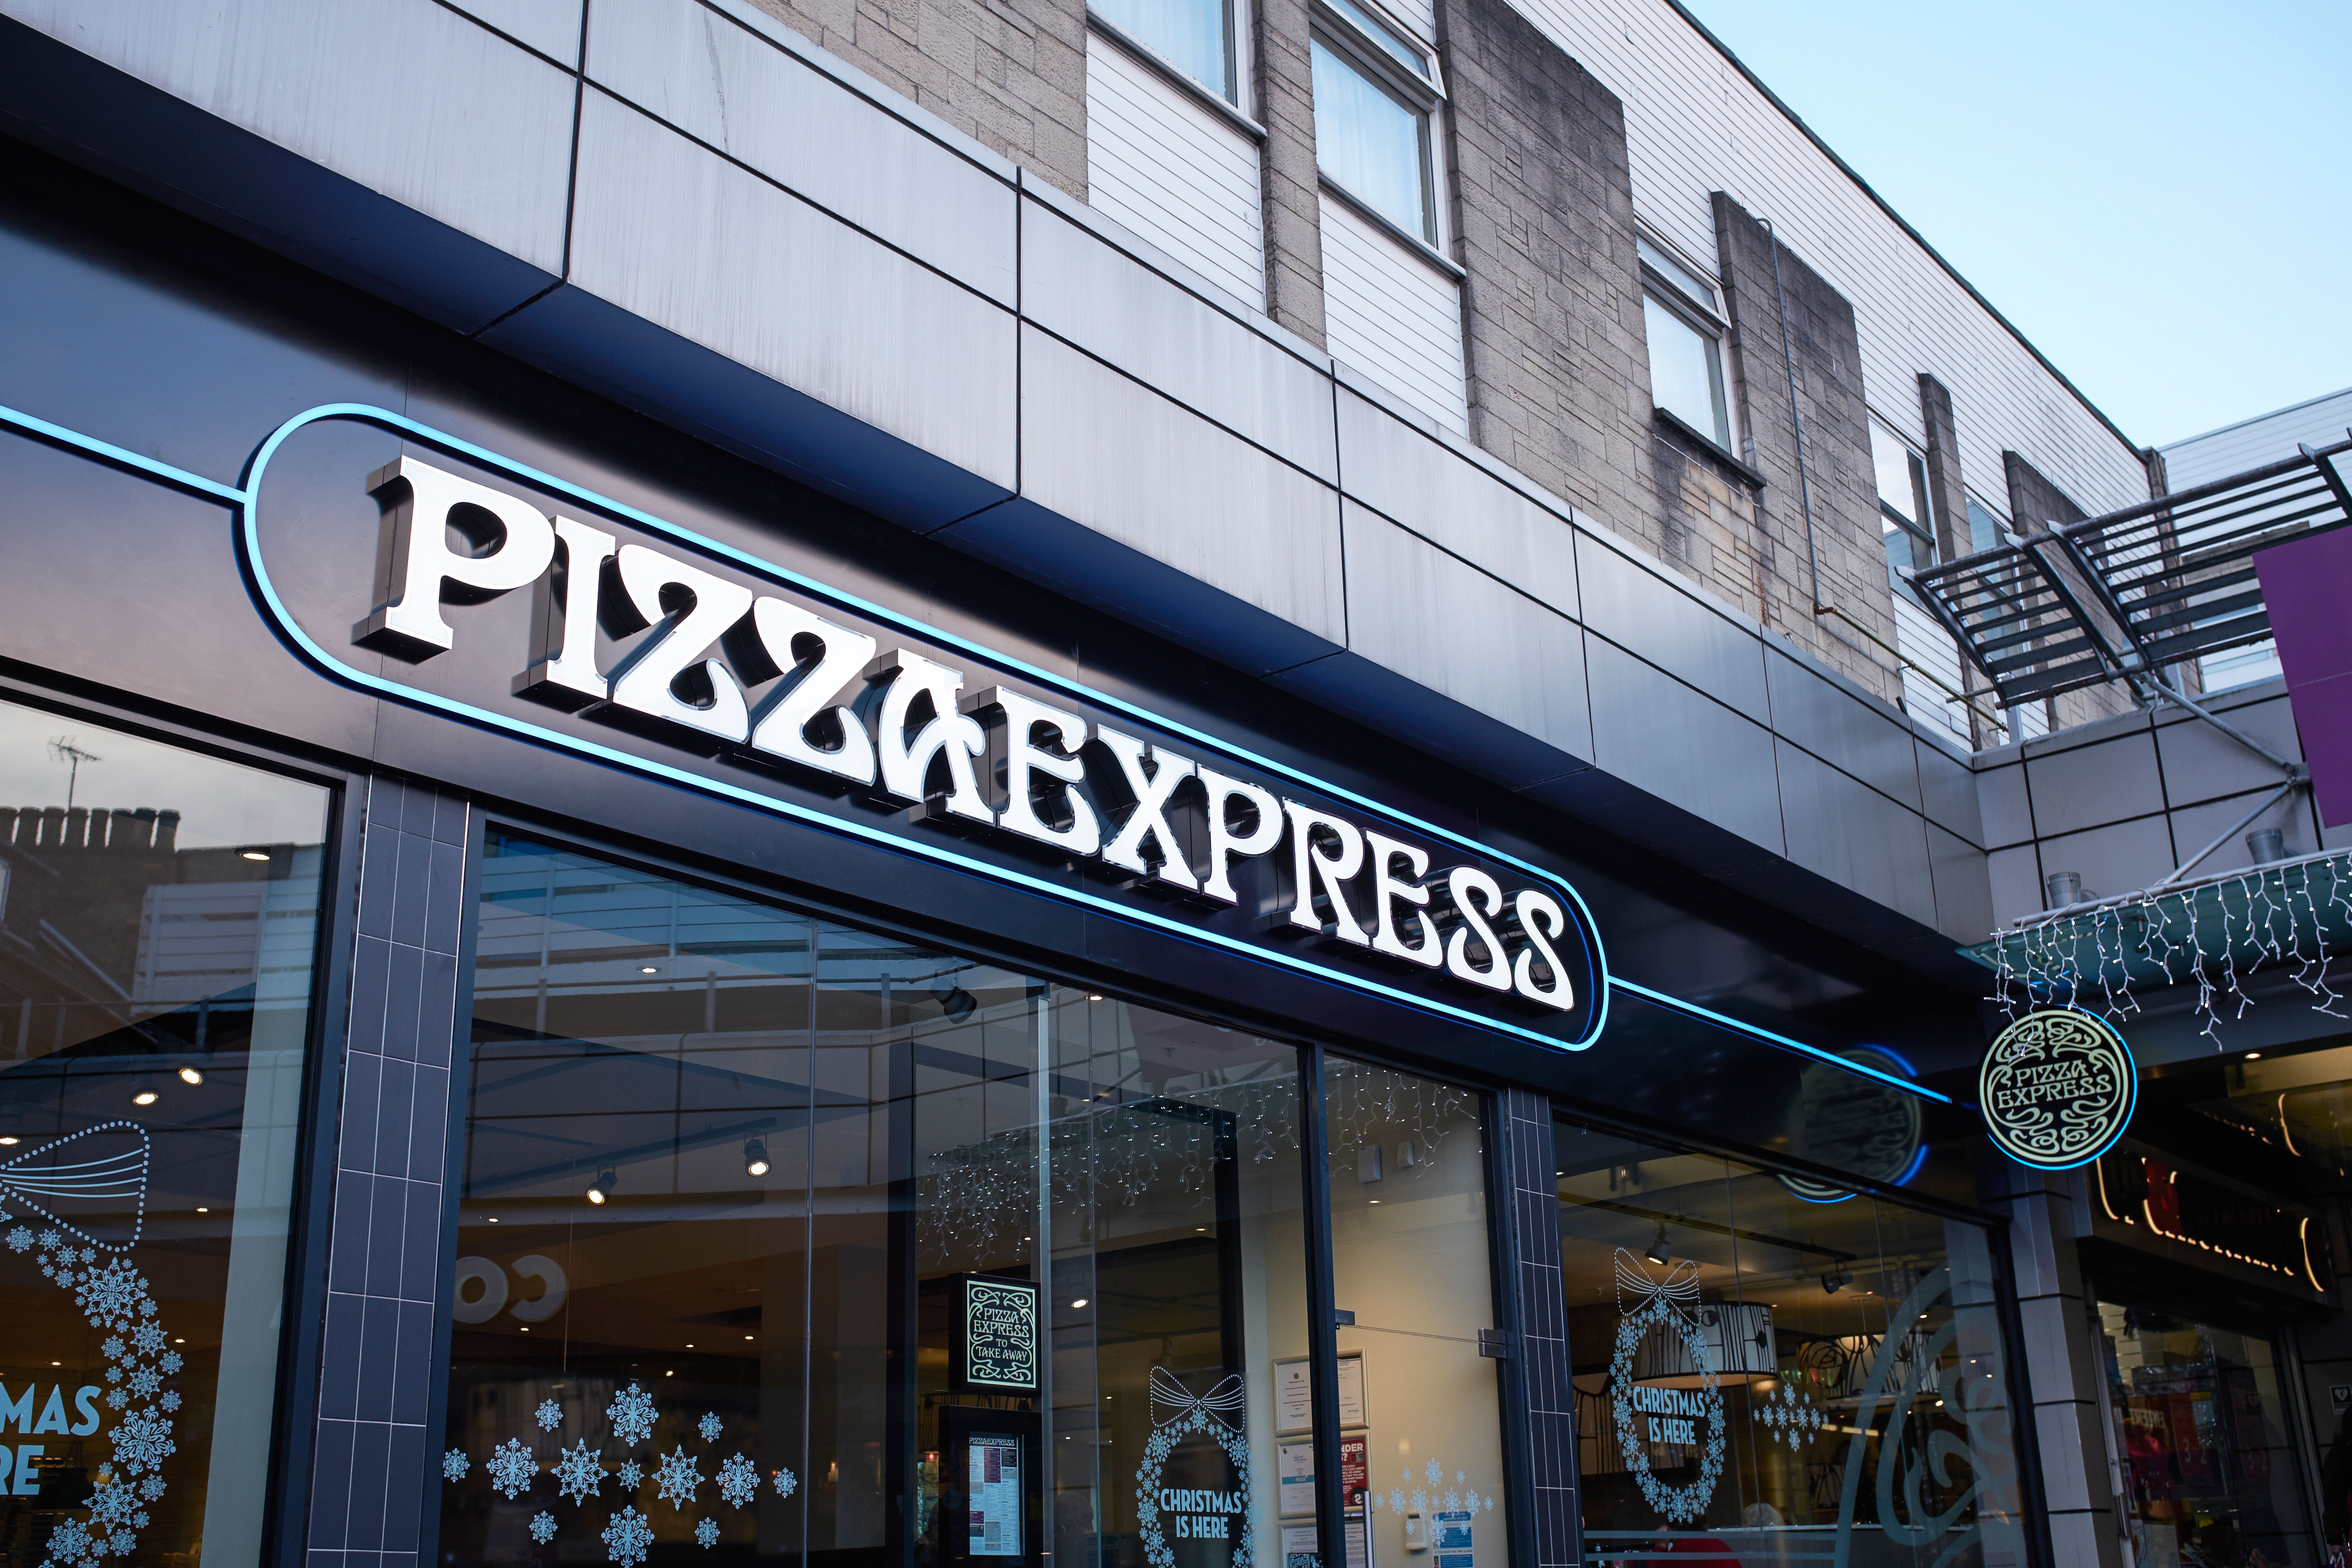 Pizza Express might keep some of its restaurants closed